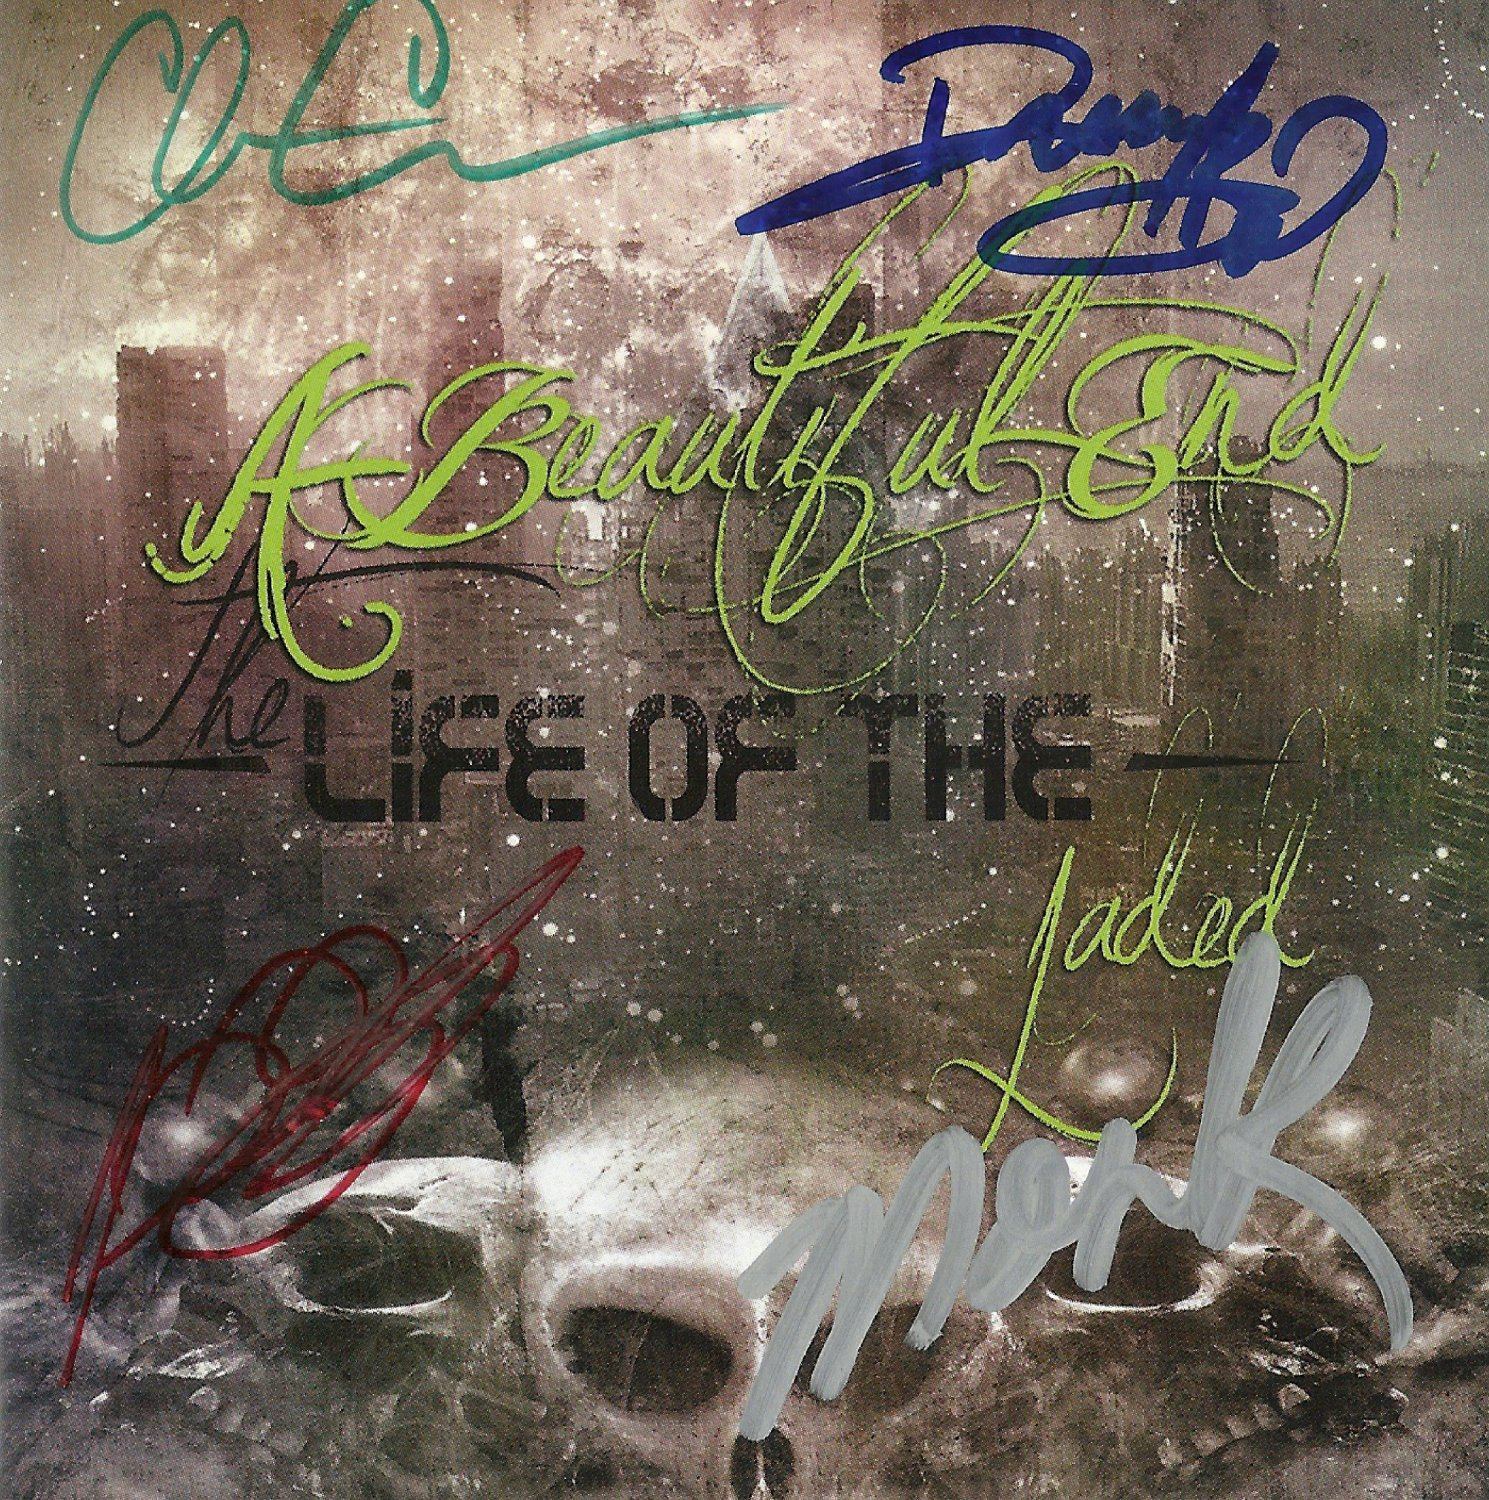 The Life Of The Jaded by A Beautiful End (Autographed CD)